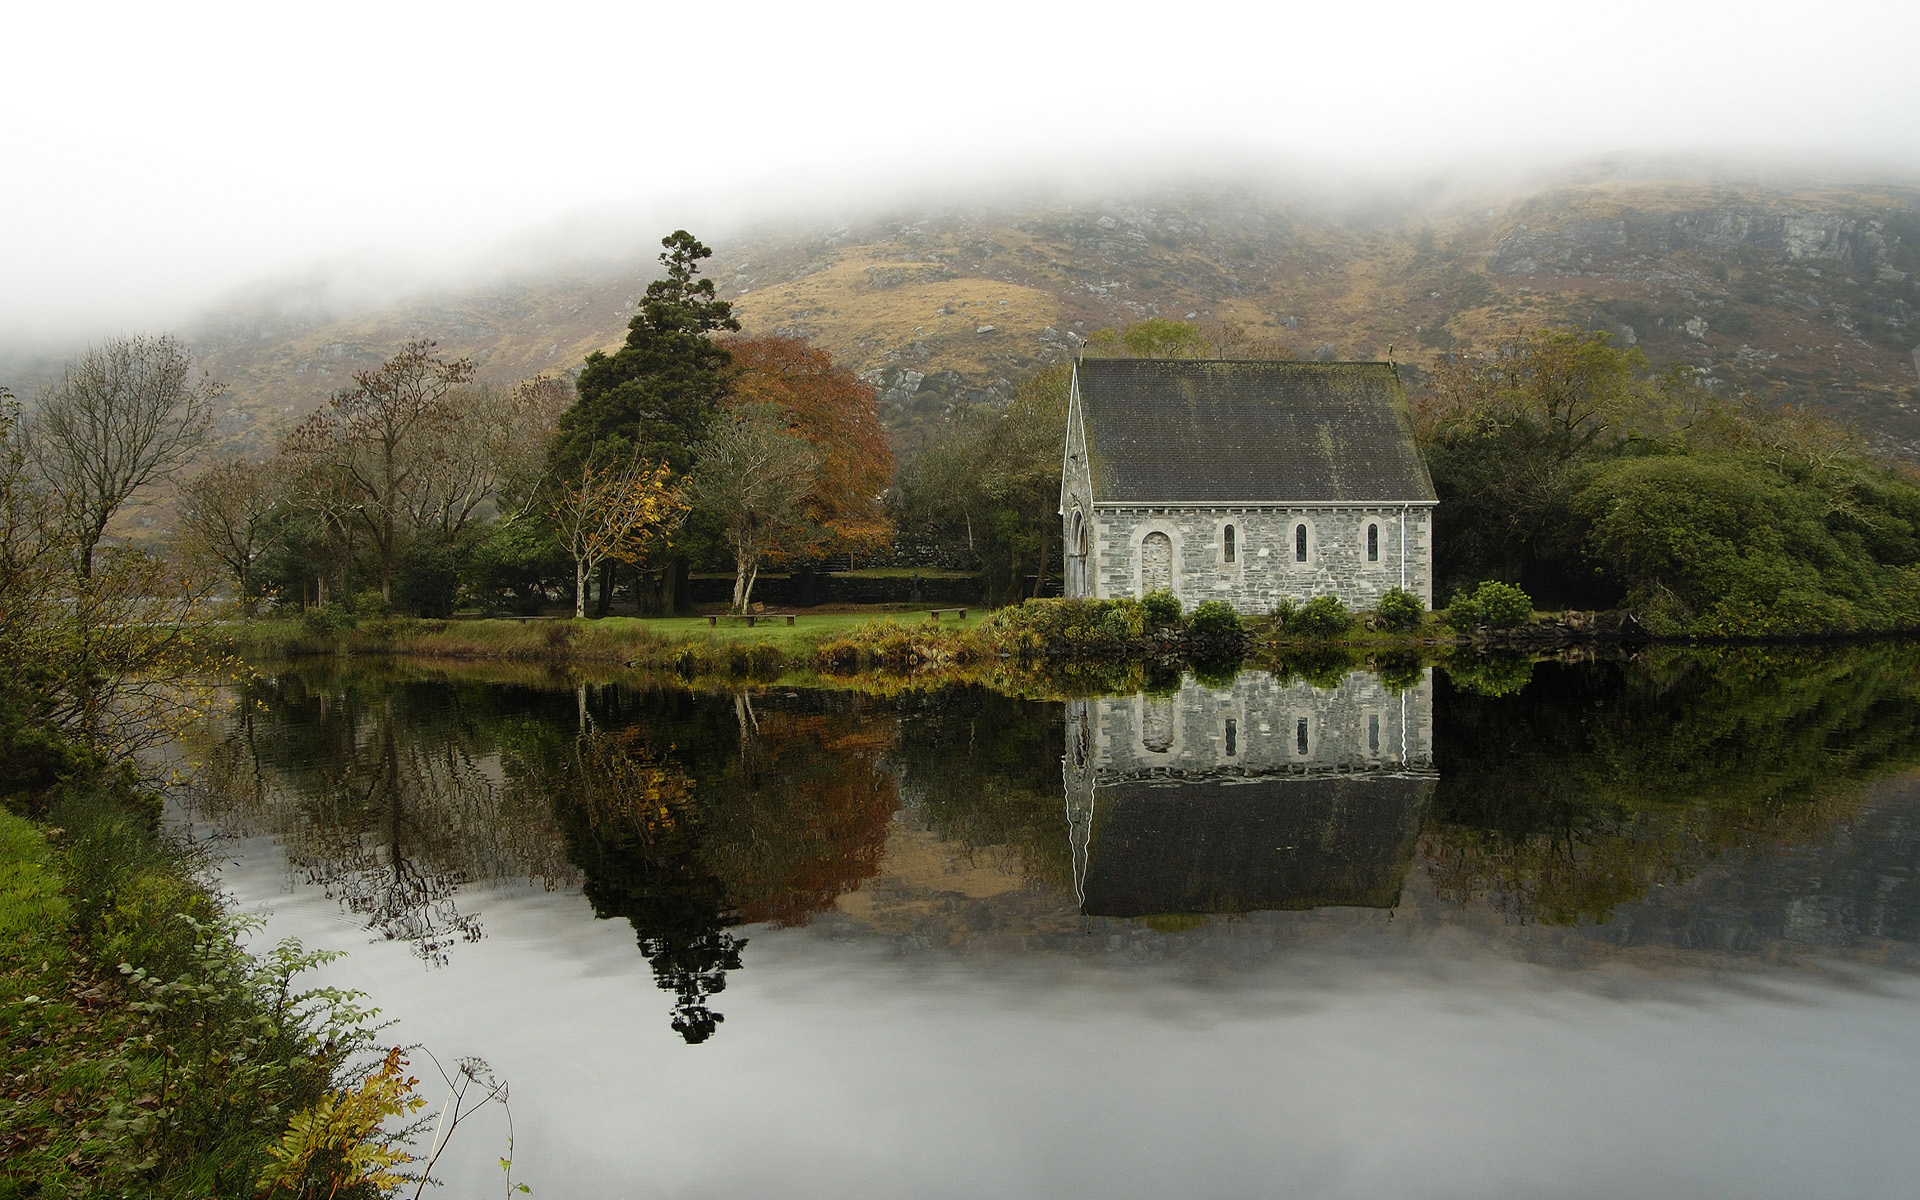 Gougane Barra wallpapers and images   wallpapers pictures photos 1920x1200